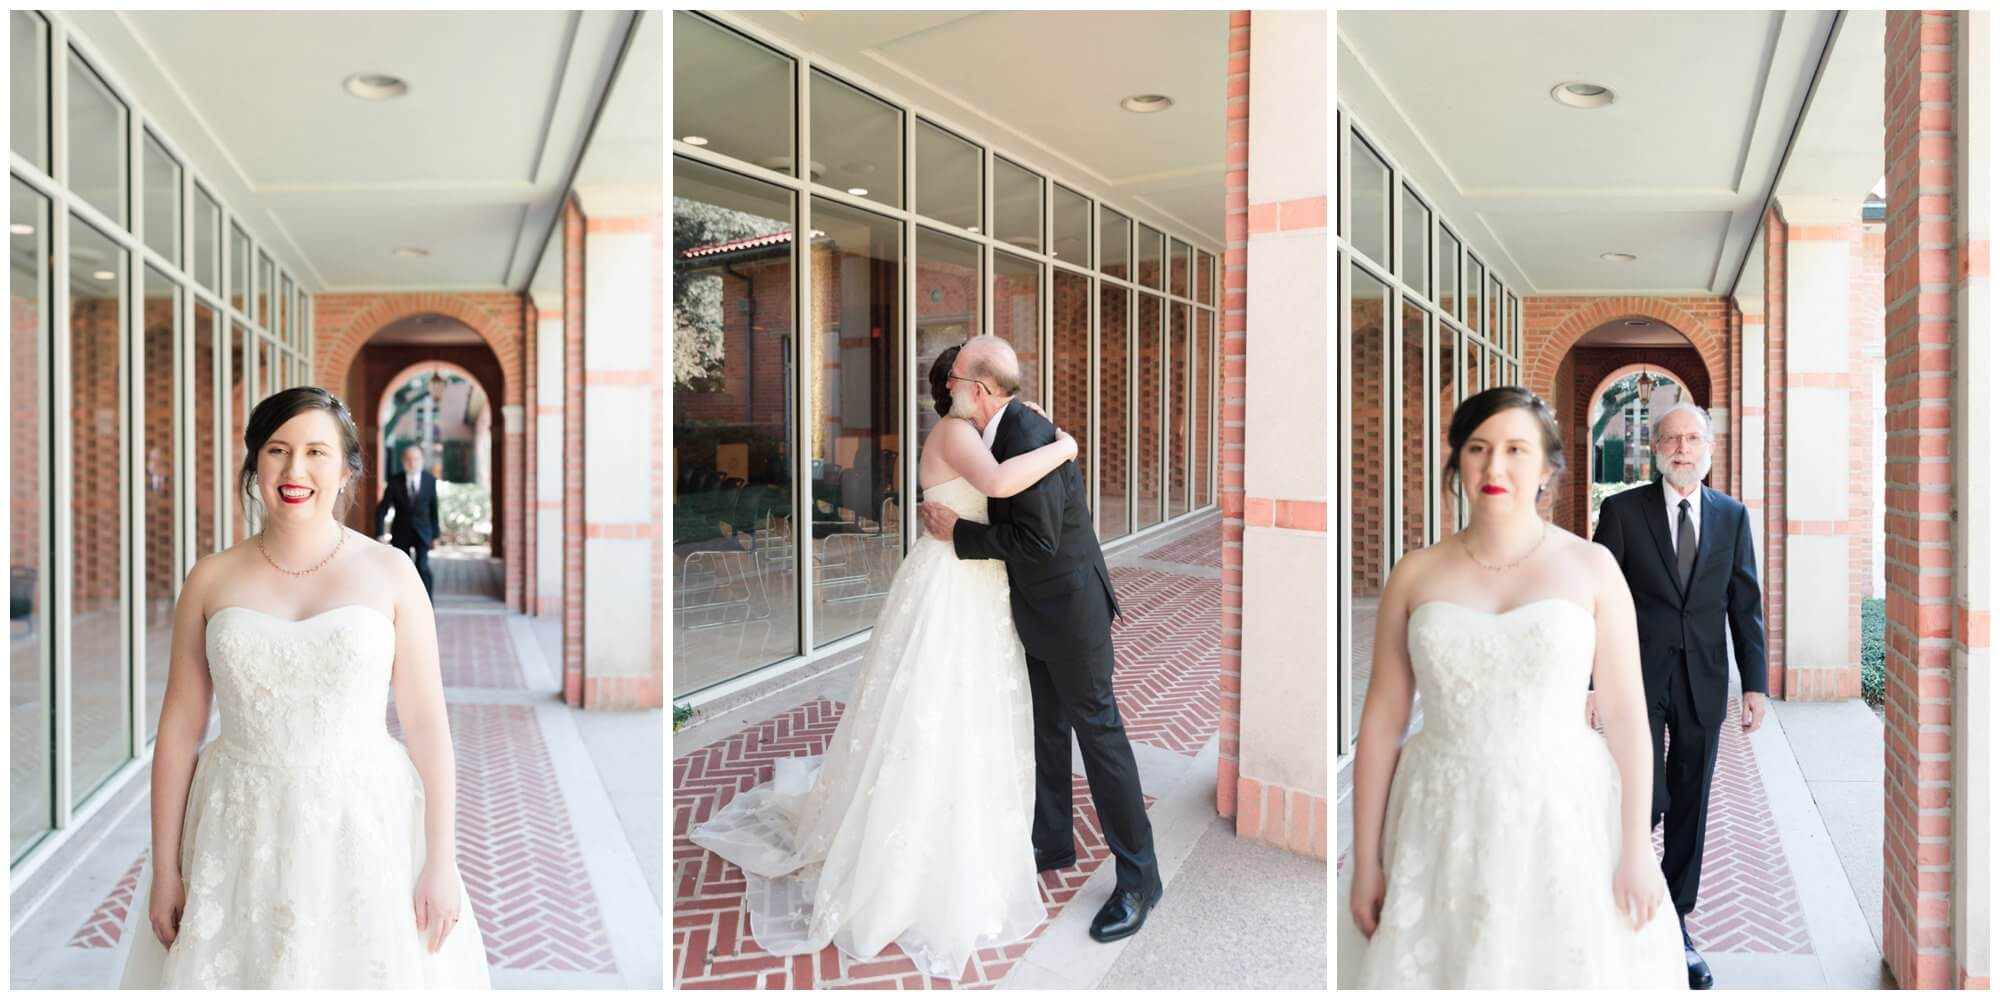 first look with father at Rice University in Houston Texas by Swish and Click Photography